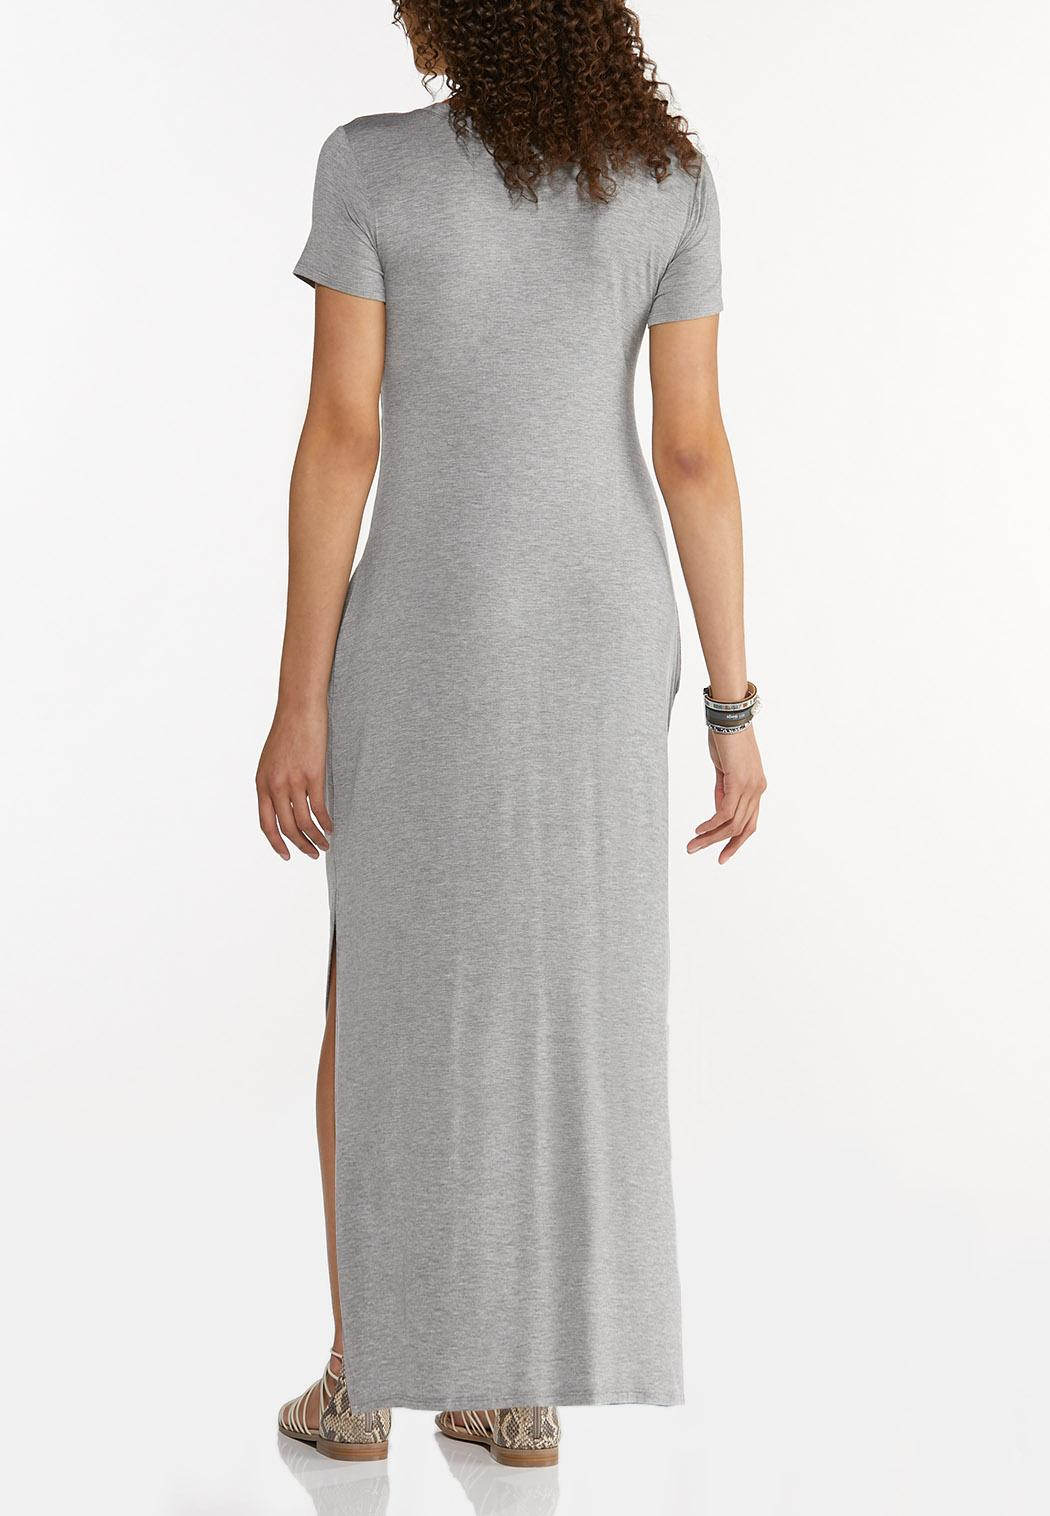 Knotted Tee Maxi Dress (Item #44596182)